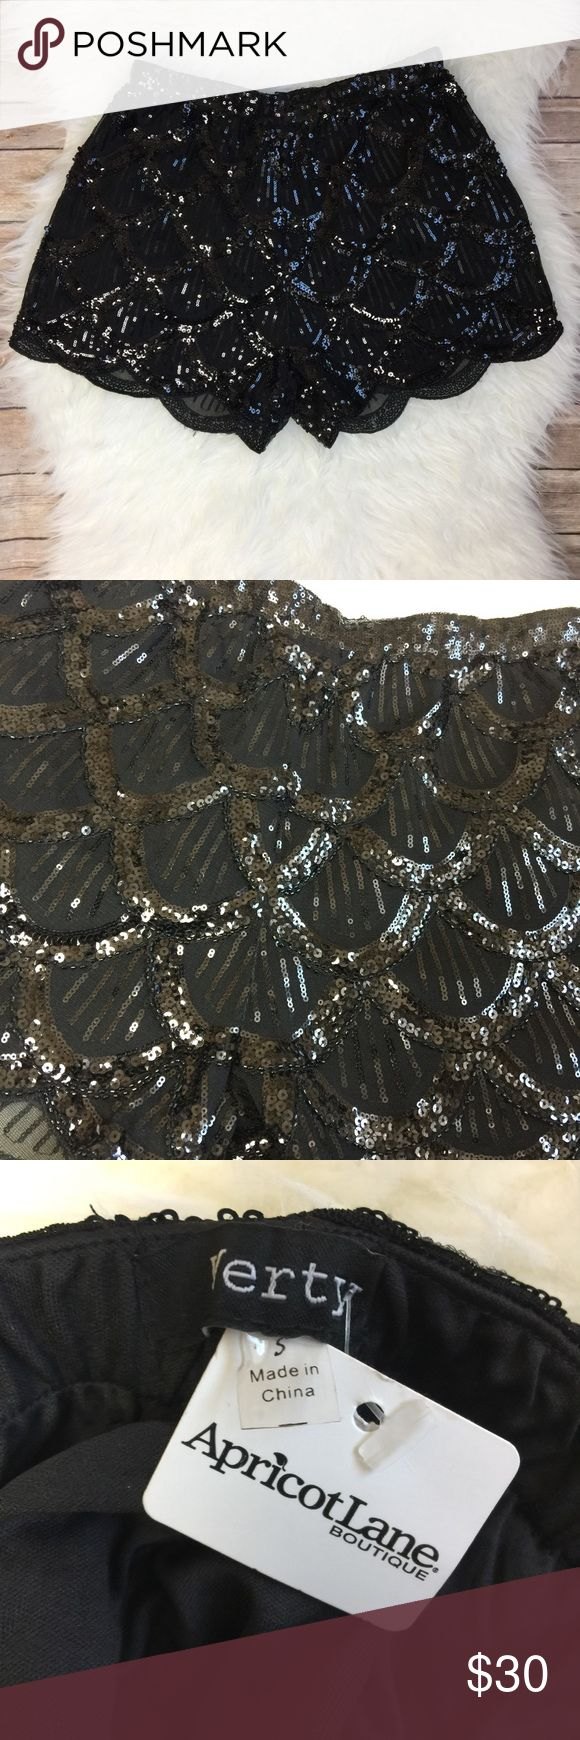 """Apricot Lane Black Sequins Shorts Apricot Lane Black Sequins Shorts. Size Small NWT 100% Polyester. Approximate measurements laying flat: 13"""" waistband 12.5"""" length 12"""" rise 2.5"""" inseam. No trades Offers Welcomed. Apricot Lane Boutique Shorts"""